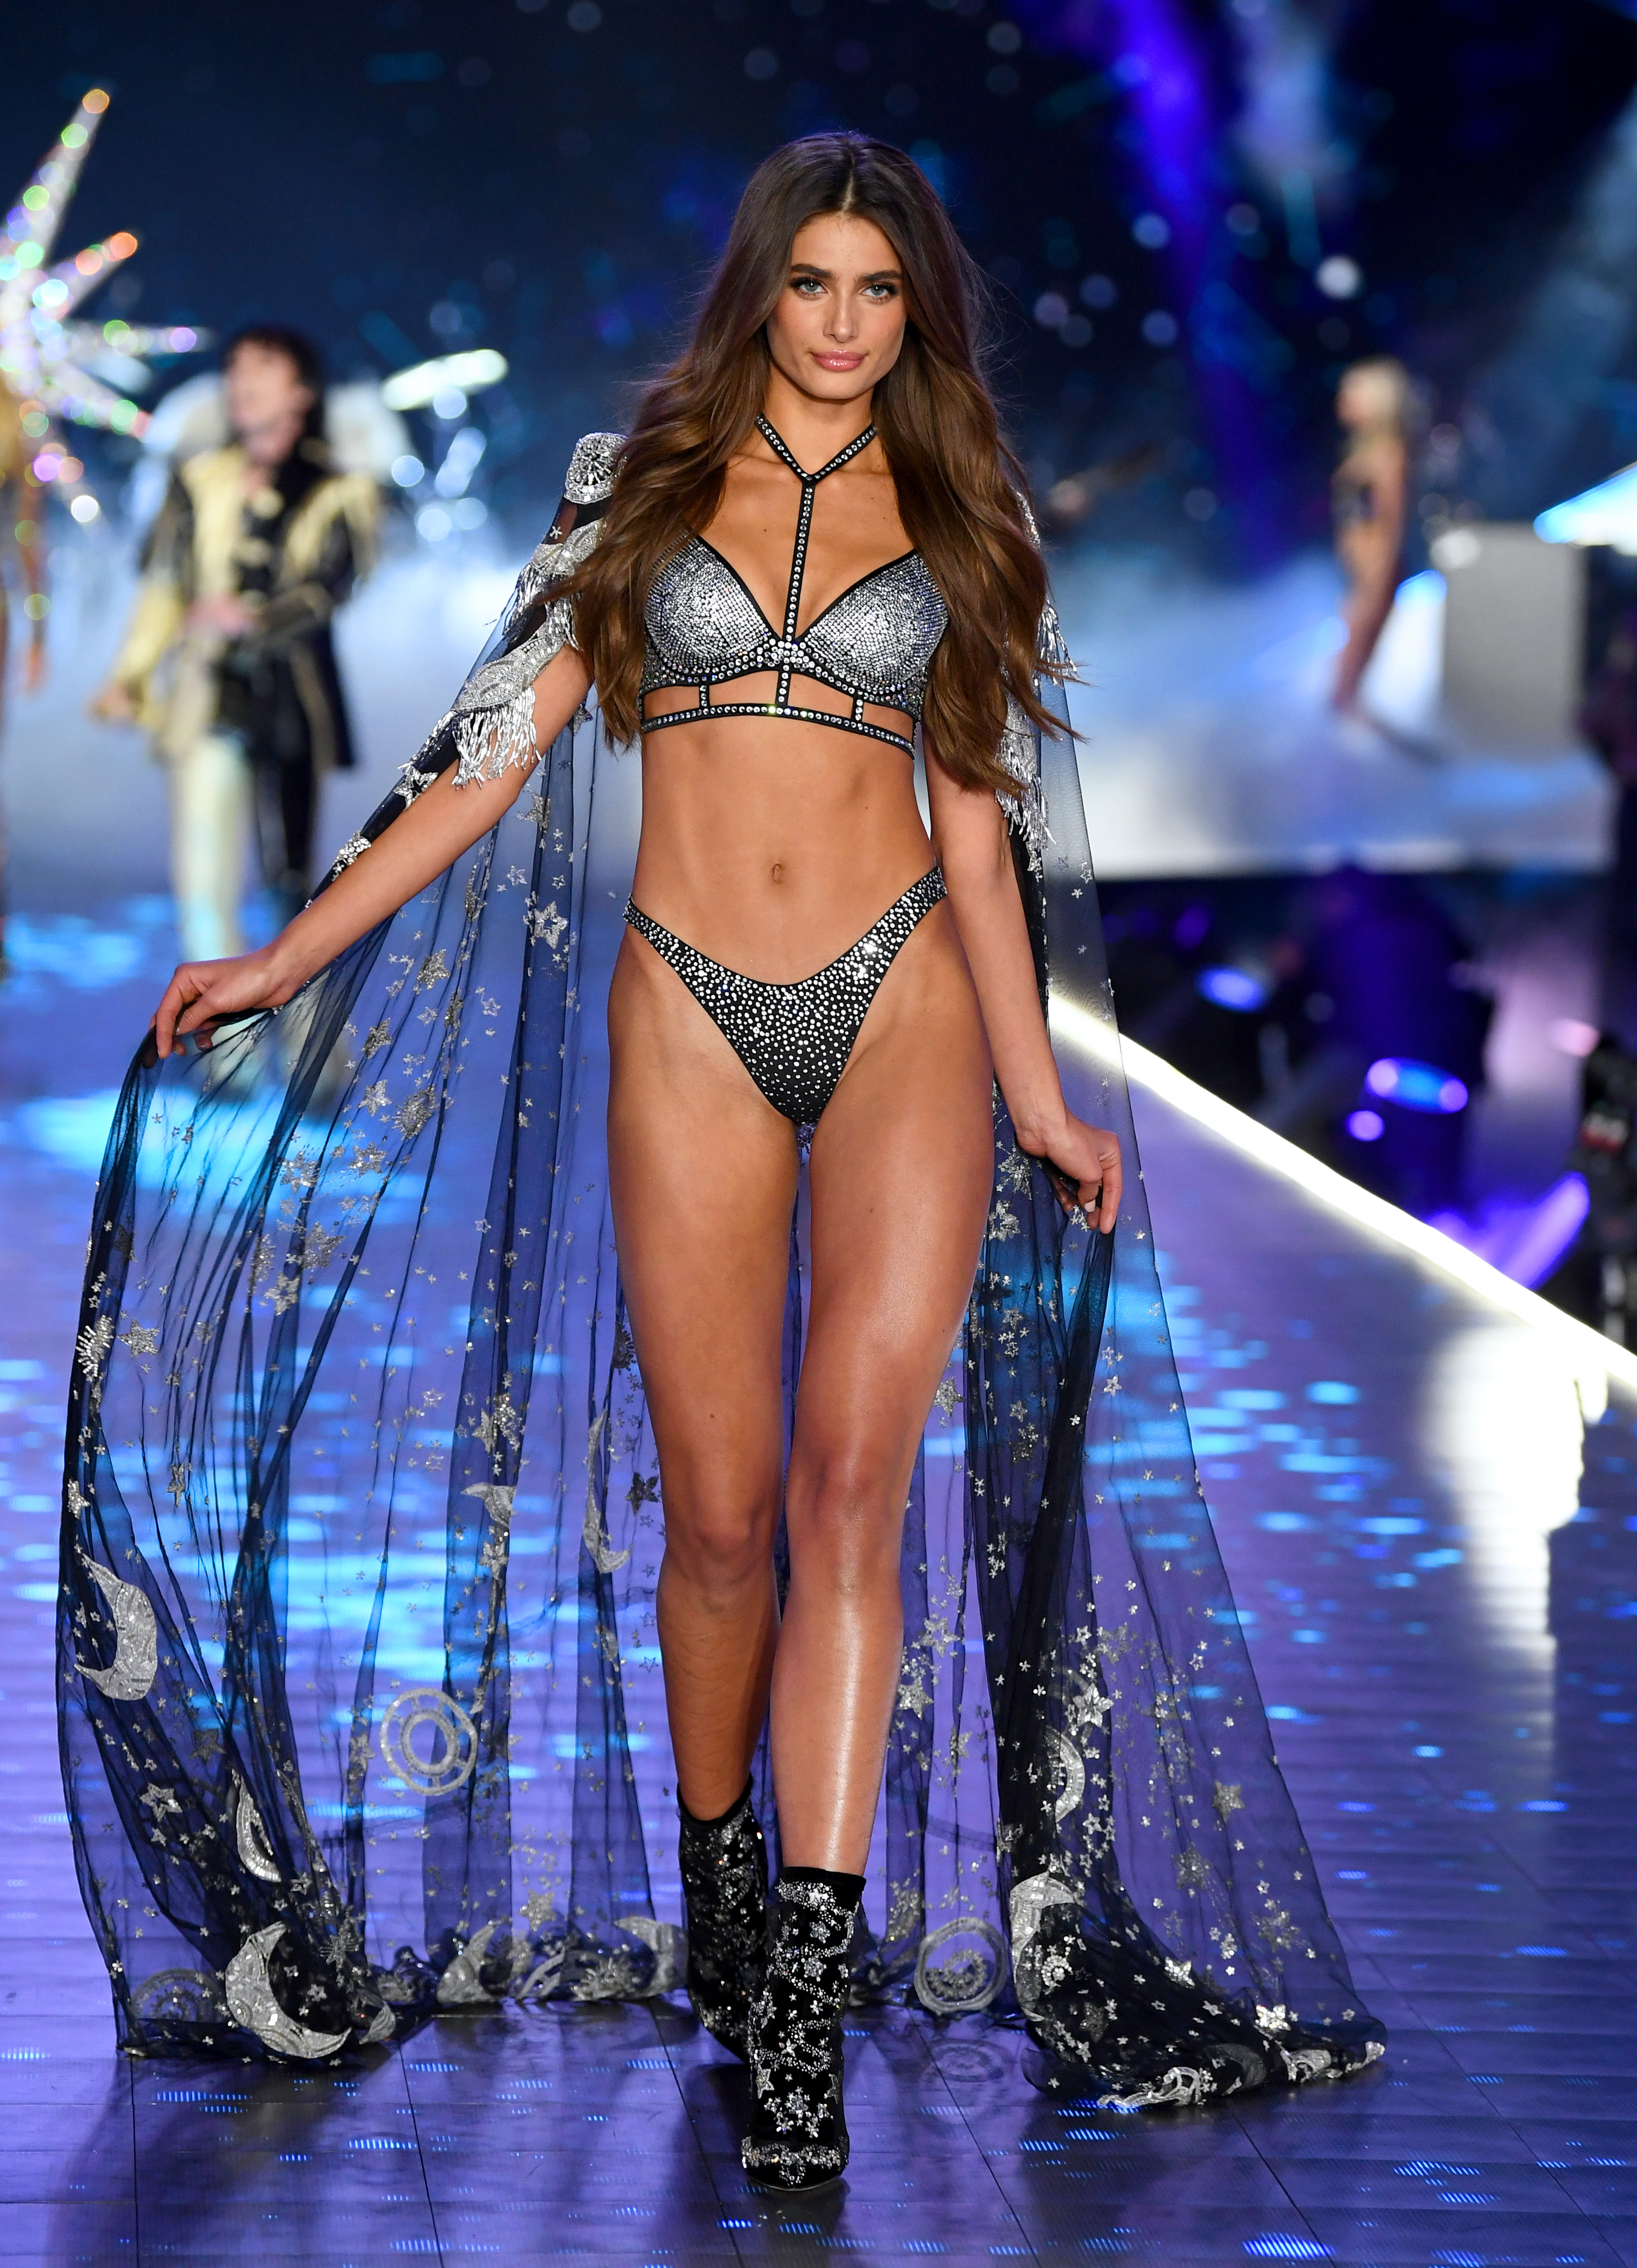 Taylor Hill walks the runway during the 2018 Victoria's Secret Fashion Show at Pier 94 on November 8, 2018 in New York City.